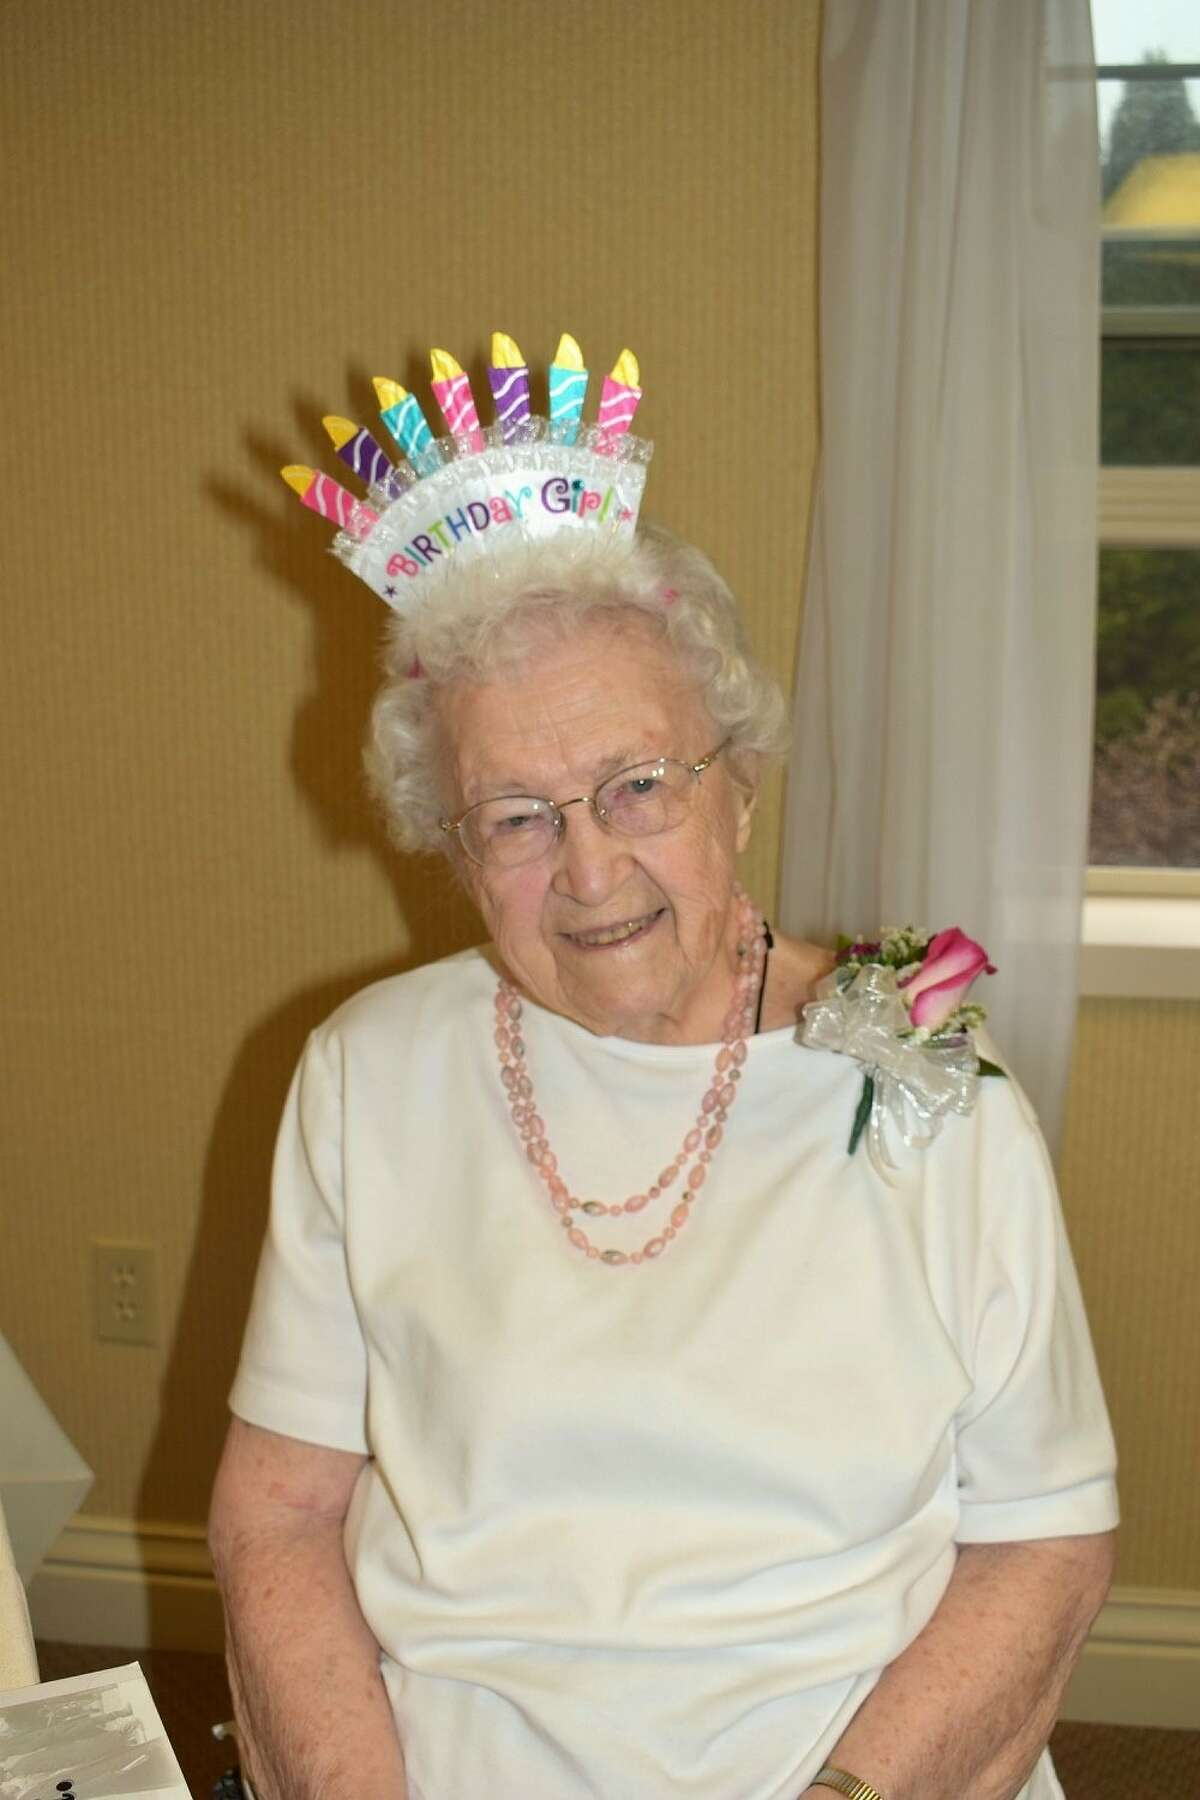 Genevieve Kelly of Albany celebrated her 100th birthday on April 27 with her children, grandchildren and great grandchildren. The new centenarian lives at the Atria Assisted Living Facility in Albany. She has two children, seven grandchildren, 12 great grandchildren, four step-grandchildren, eight step-great grandchildren and five step-great-great grandchildren. She was a mortgage originator at Home and City Savings Bank and lived in Albany for many years with her husband, Charles. After his death, she moved to Colonie. She is an avid reader and enjoys going out to lunch and dinner.